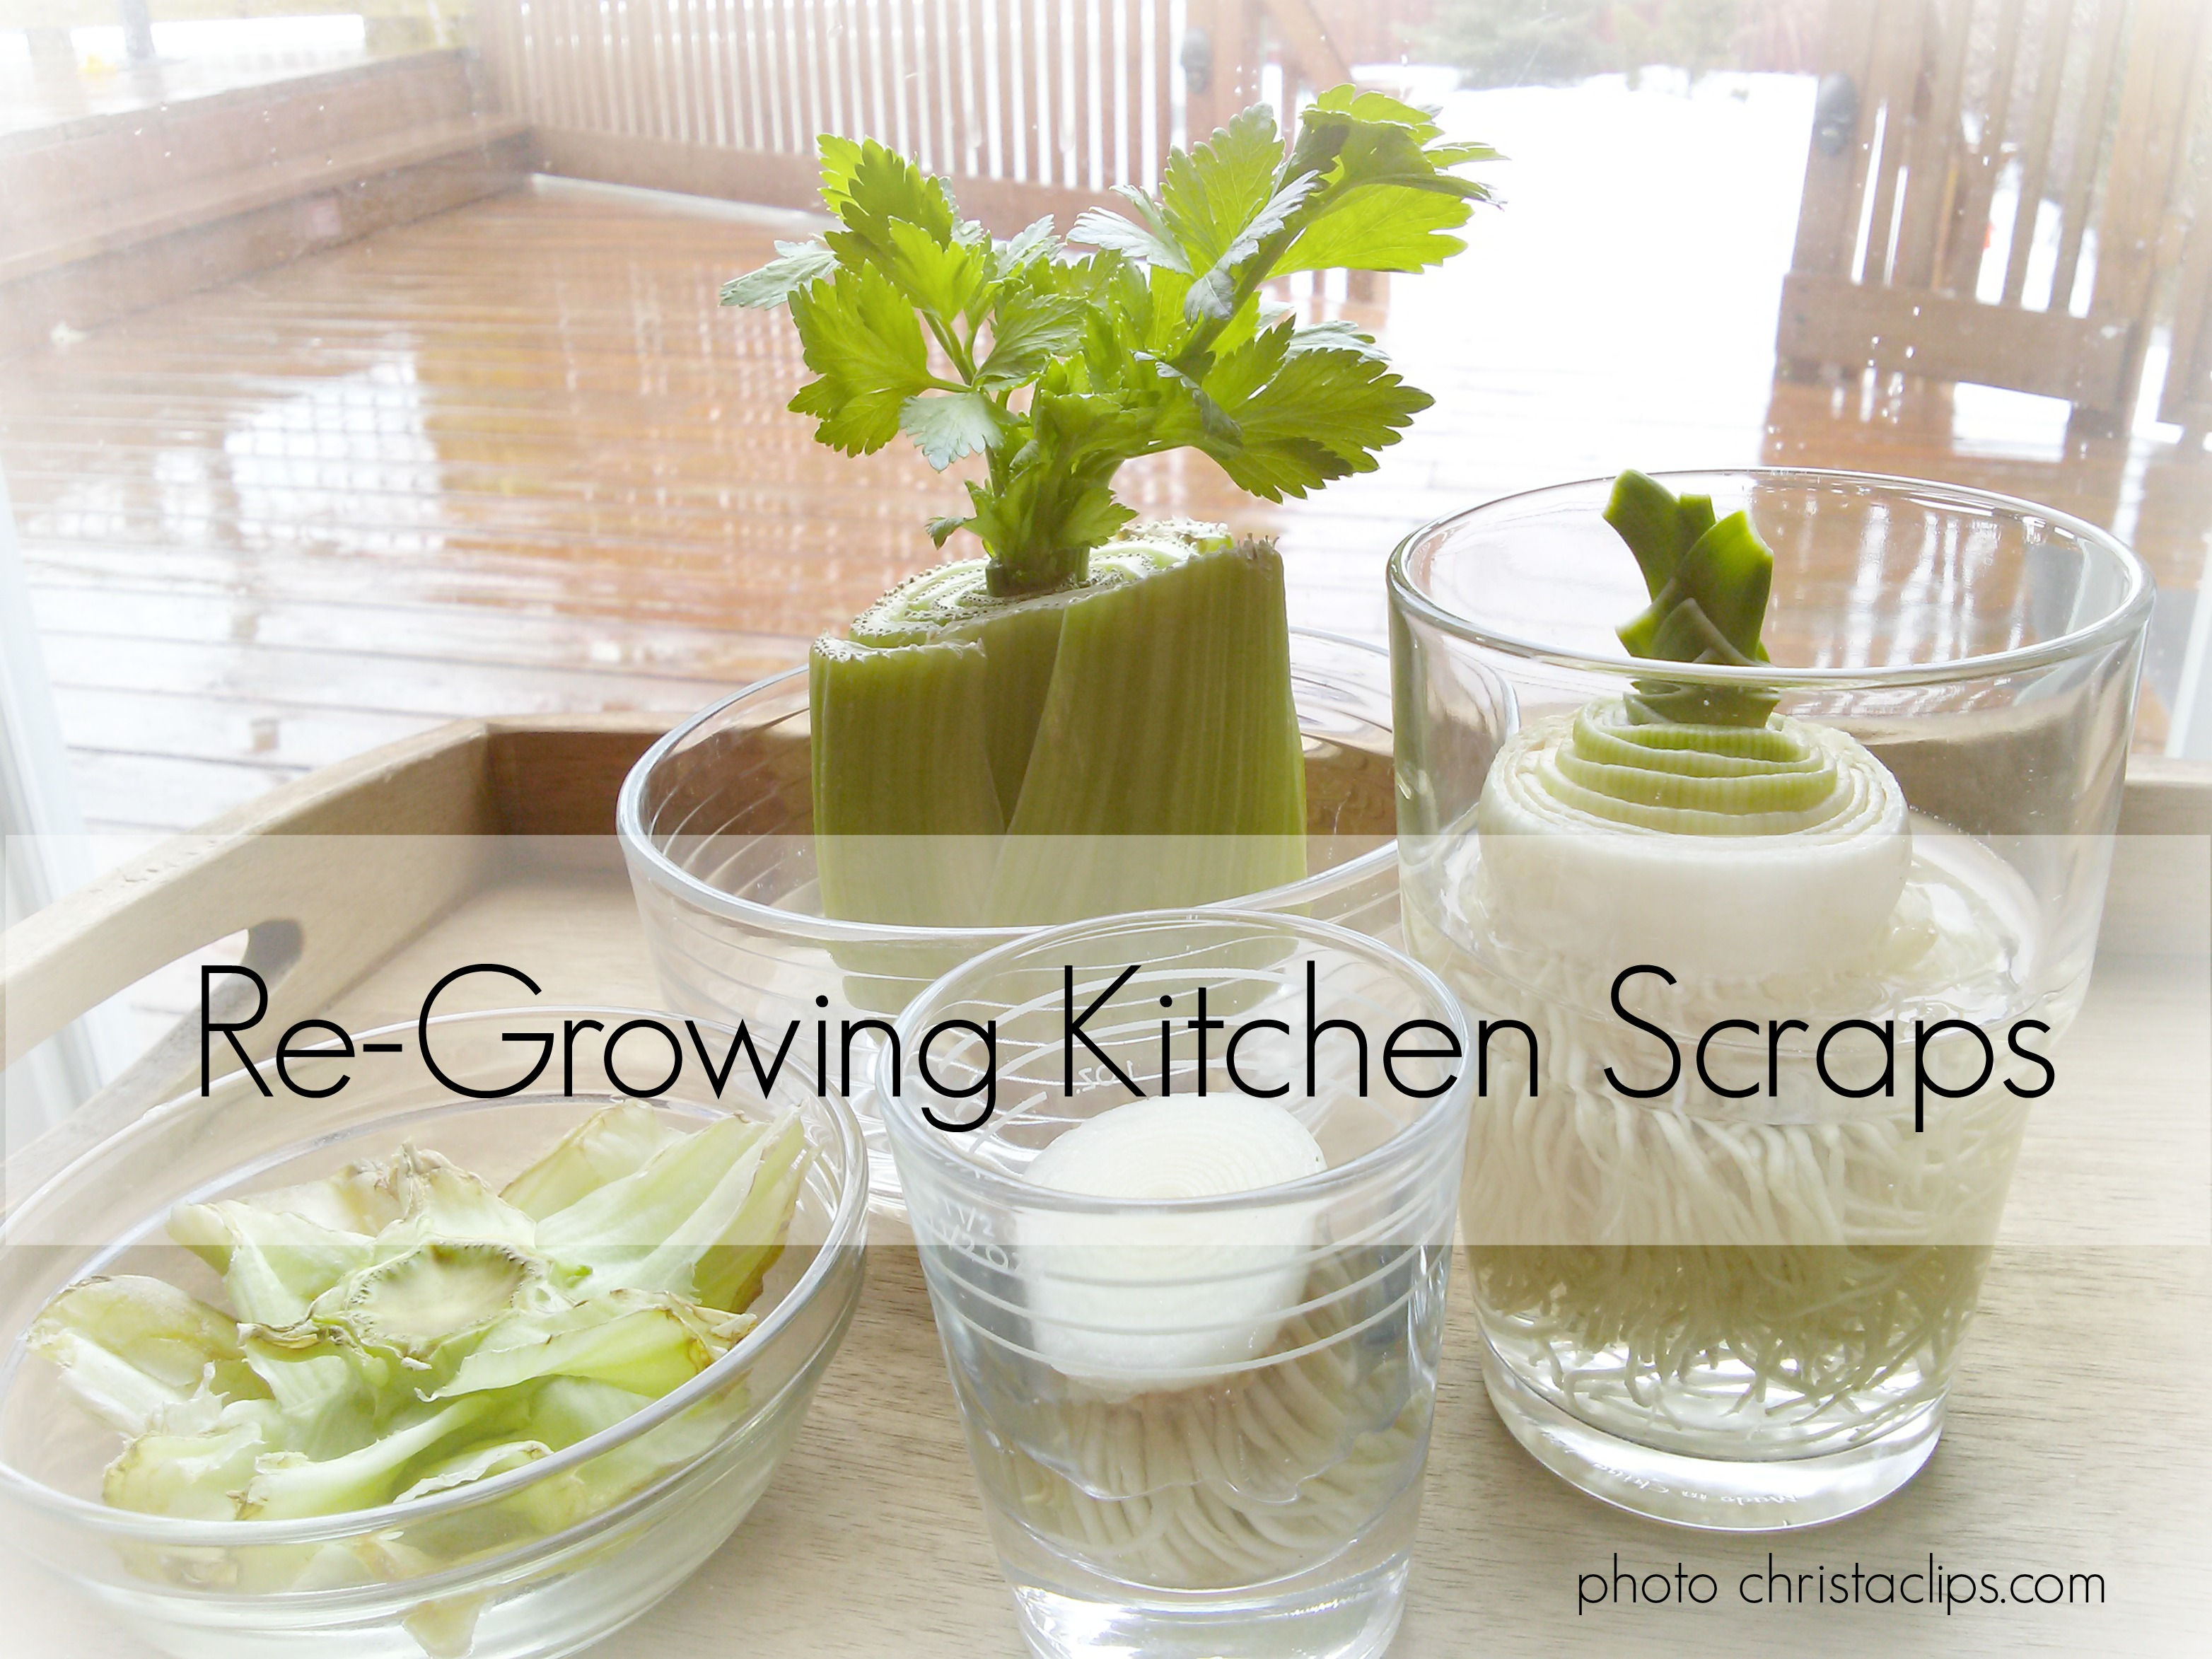 re-growing-kitchen-scraps-christa-clips-save-at-home-mom